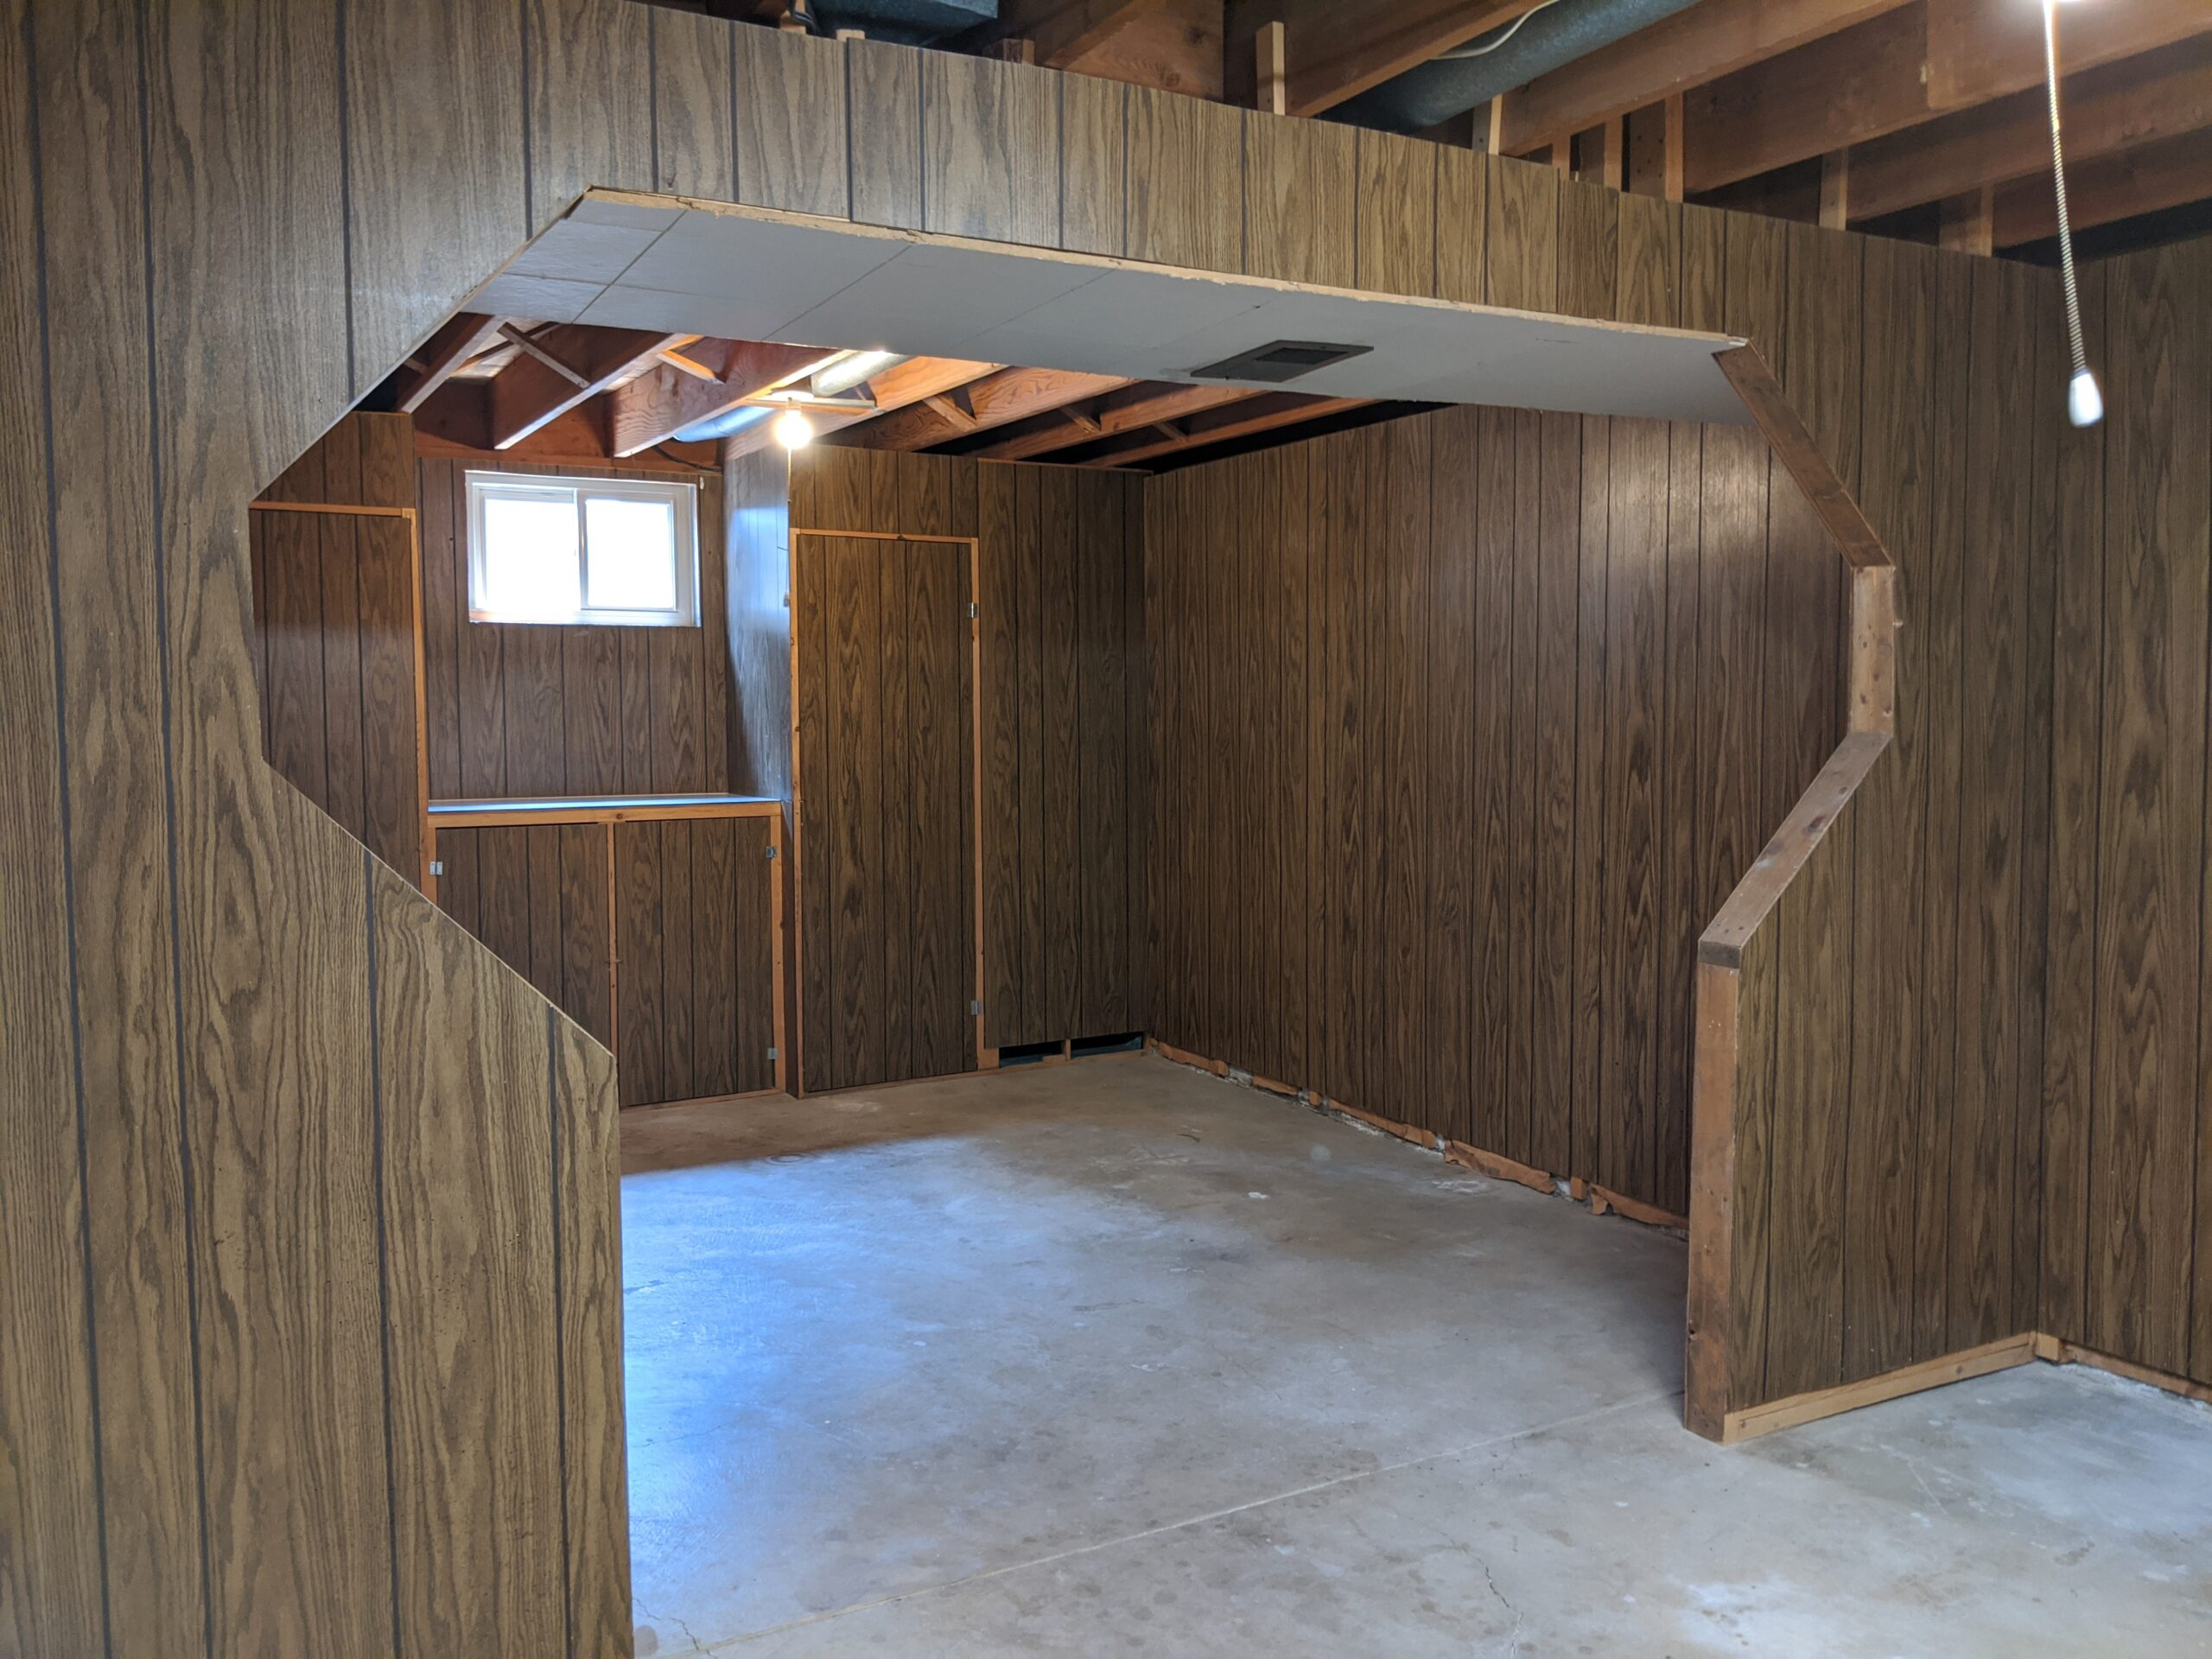 """With dated paneling, exposed ceiling, and raw cement floors, this unfinished basement was the """"diamond in the rough"""" we were looking for. We'll add instant value to our first house by renovating it. (On the plus side, those cabinets provided functional storage.)"""